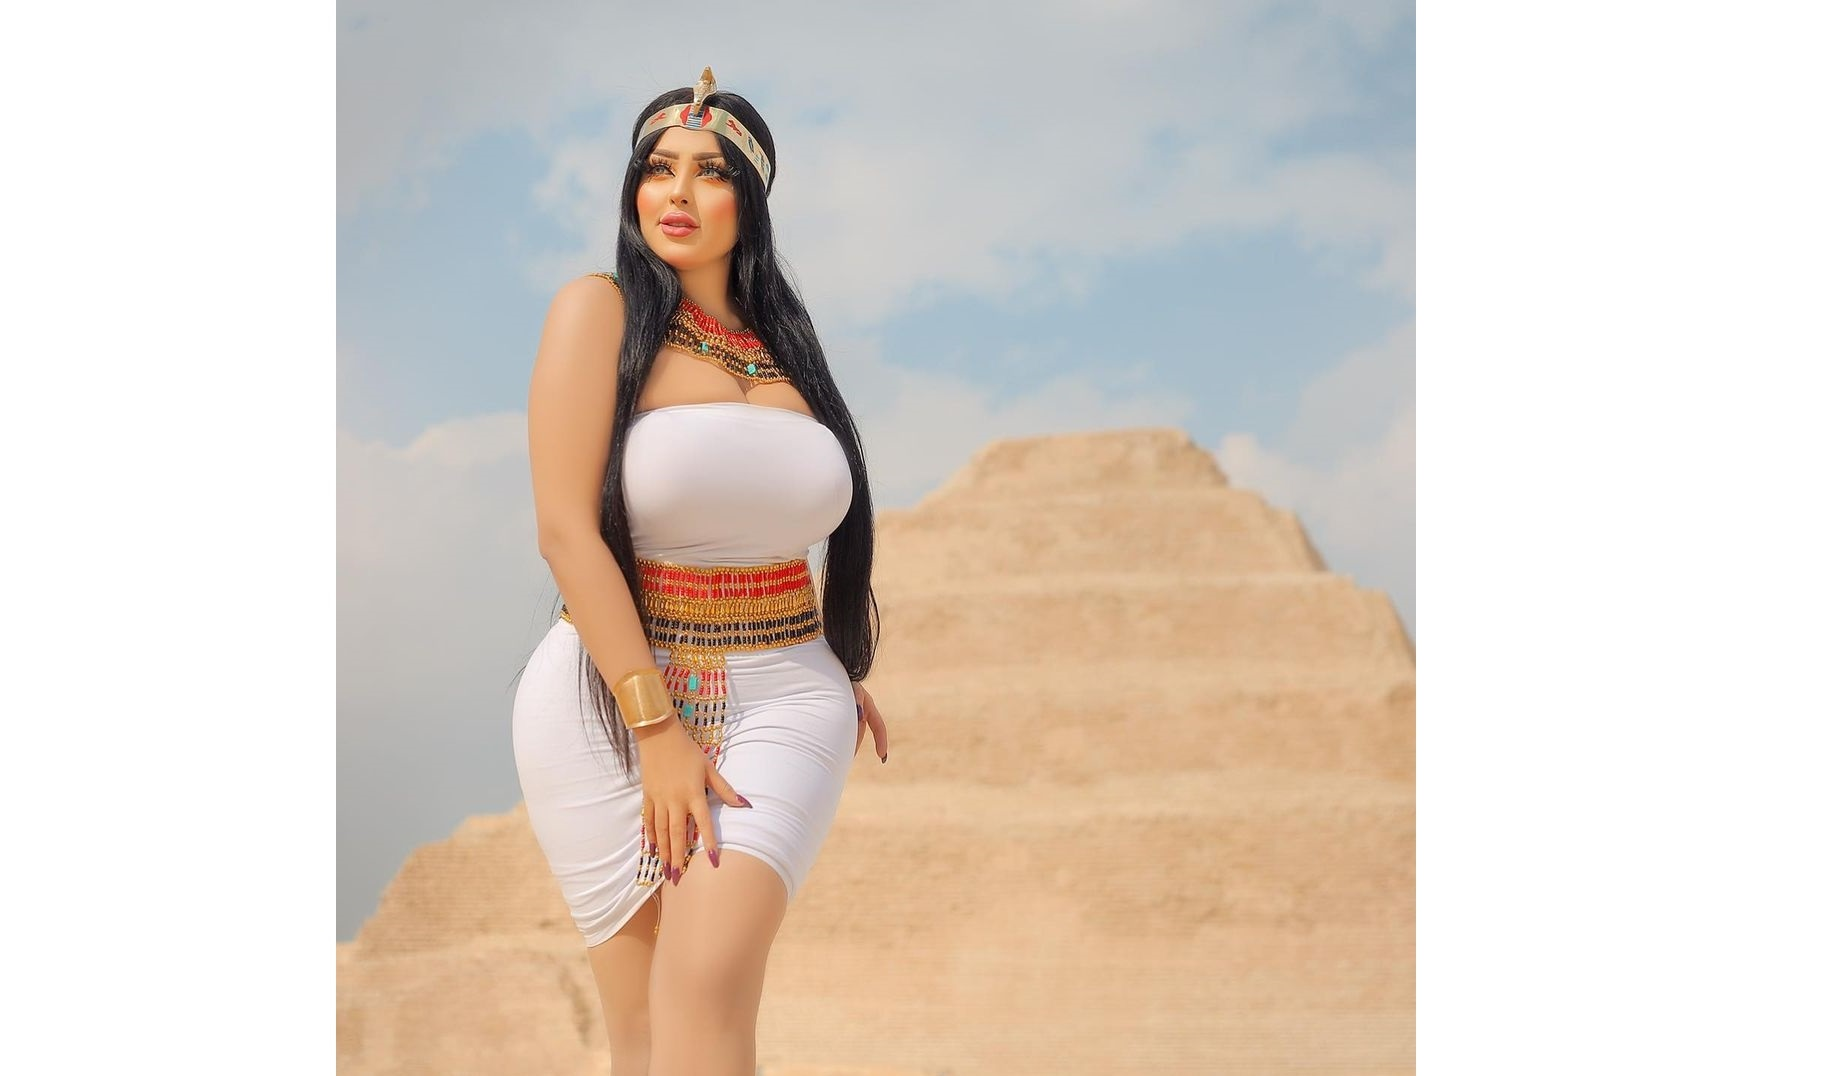 Salma Al Shimi Photos - Images For Which Egyptian Model Get Arrested Over Pyramid Photoshoot